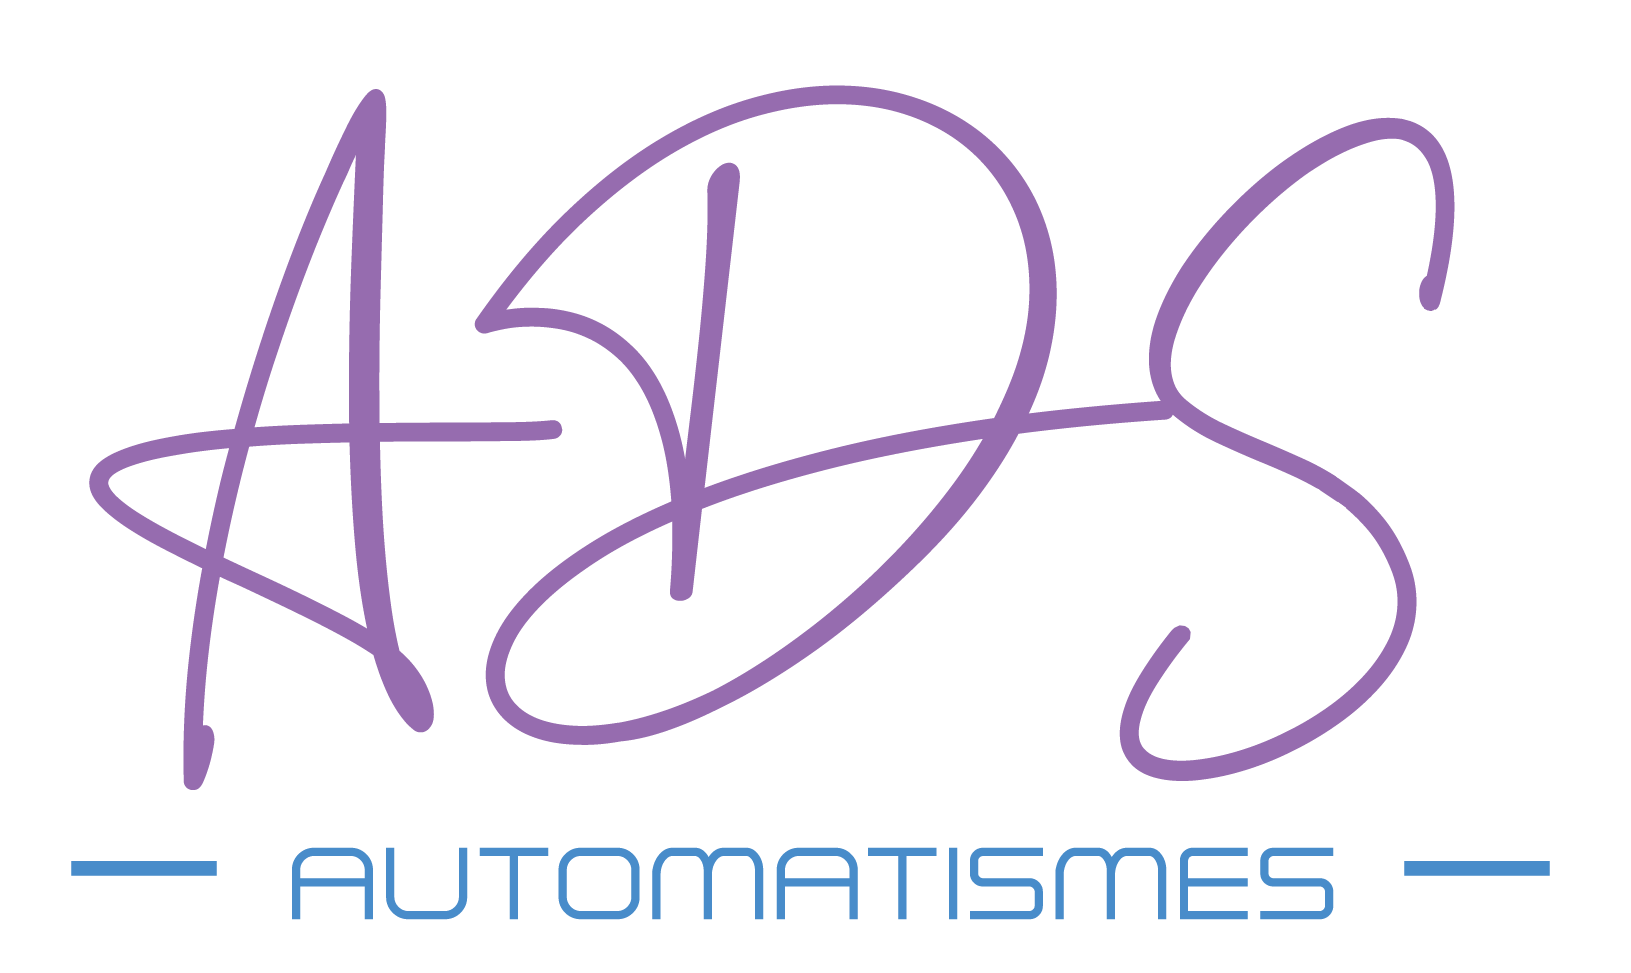 A.D.S. AUTOMATISMES SARL